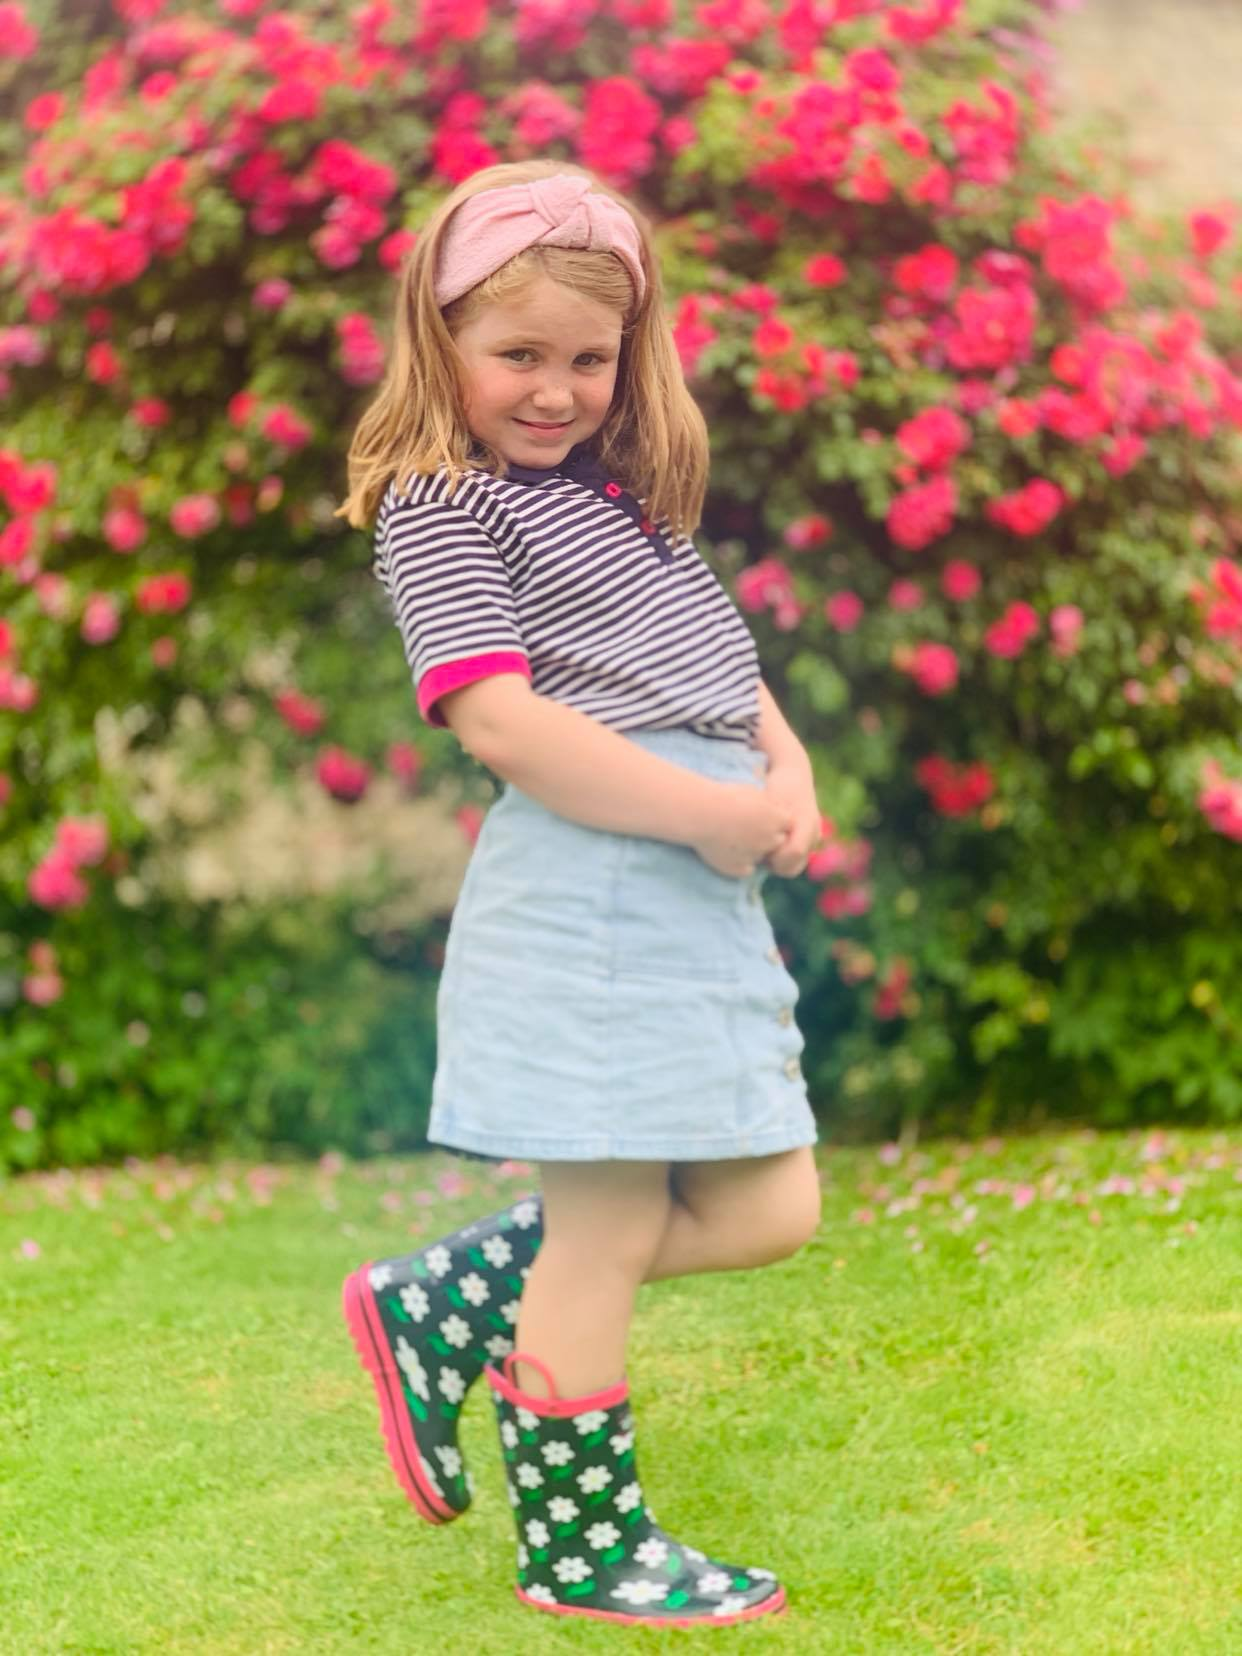 polo shirts from rydale, east anglian blogger review